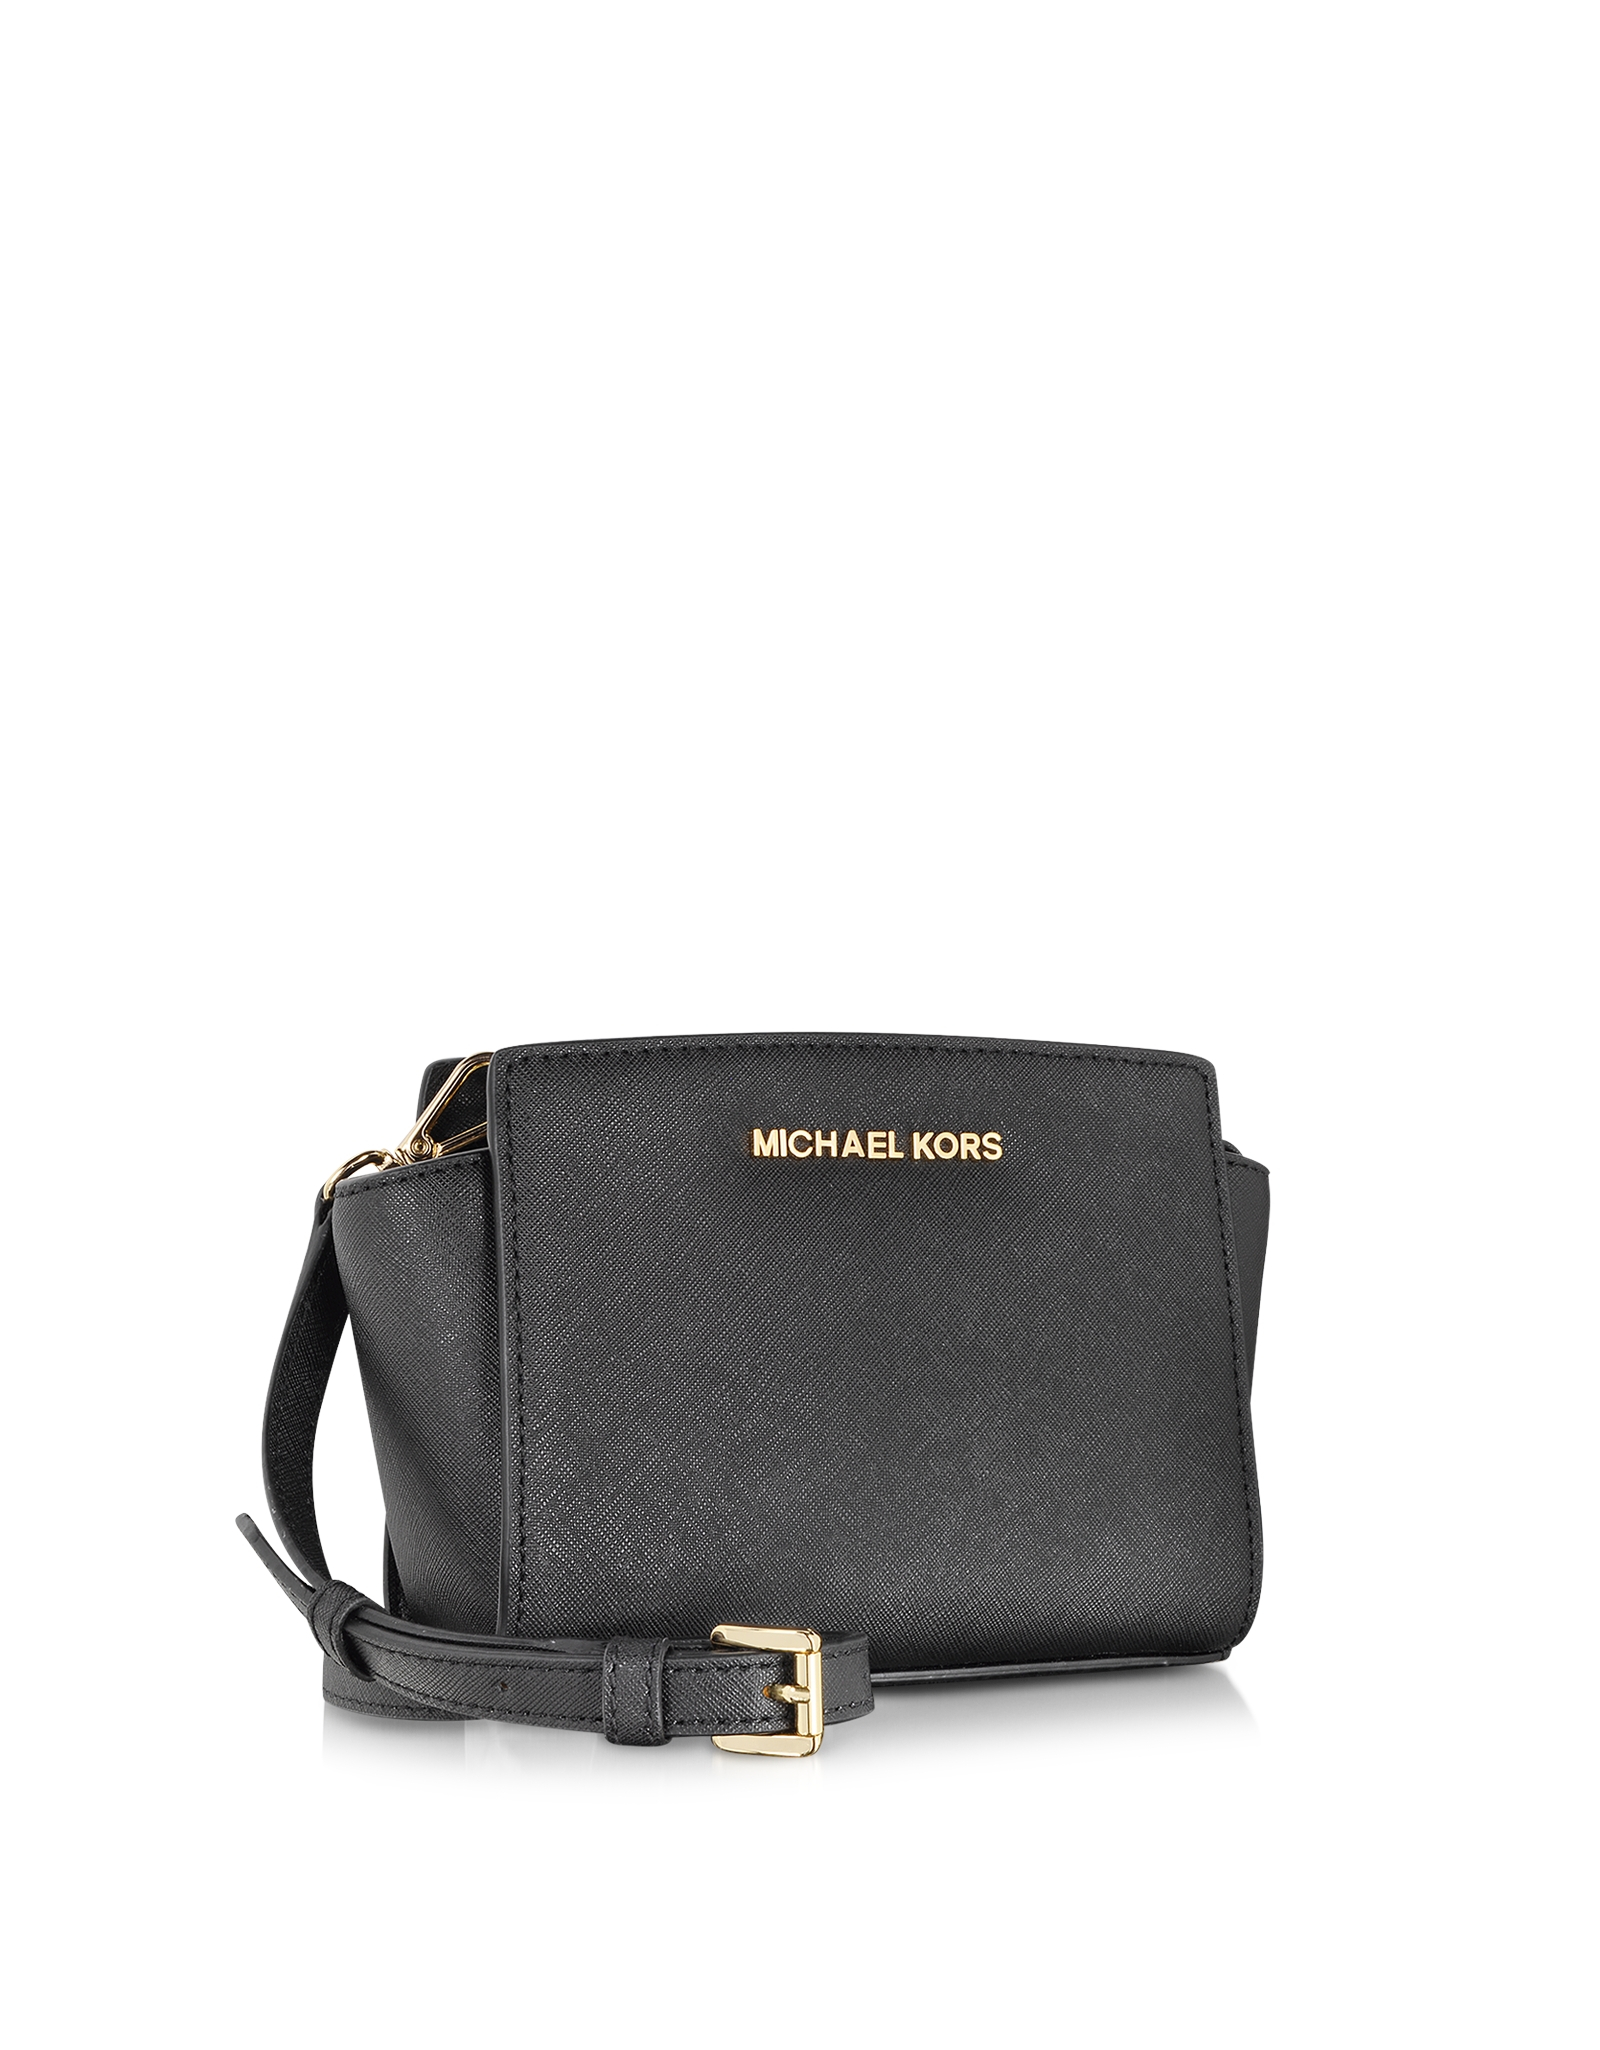 michael kors selma mini messenger bag in black lyst. Black Bedroom Furniture Sets. Home Design Ideas